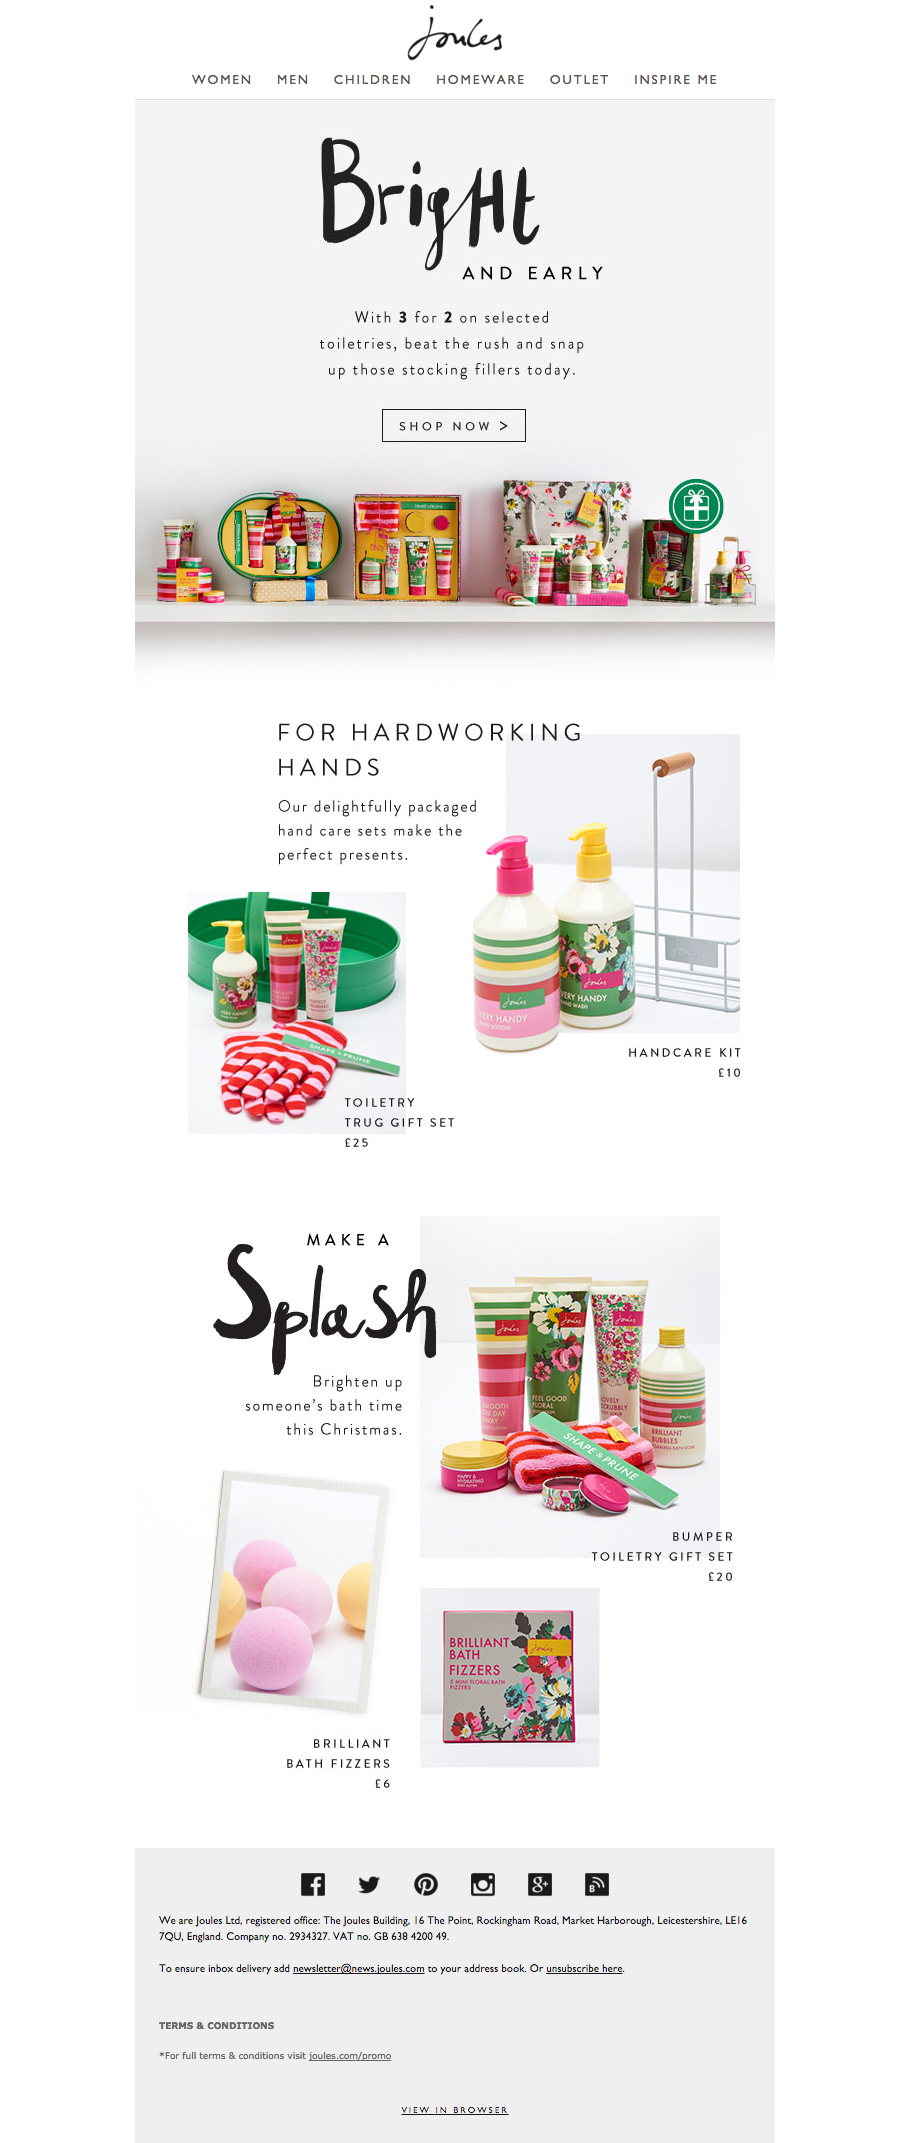 Joules Gifts Email Newsletter Email Marketing Design Email Marketing Design Inspiration Email Design